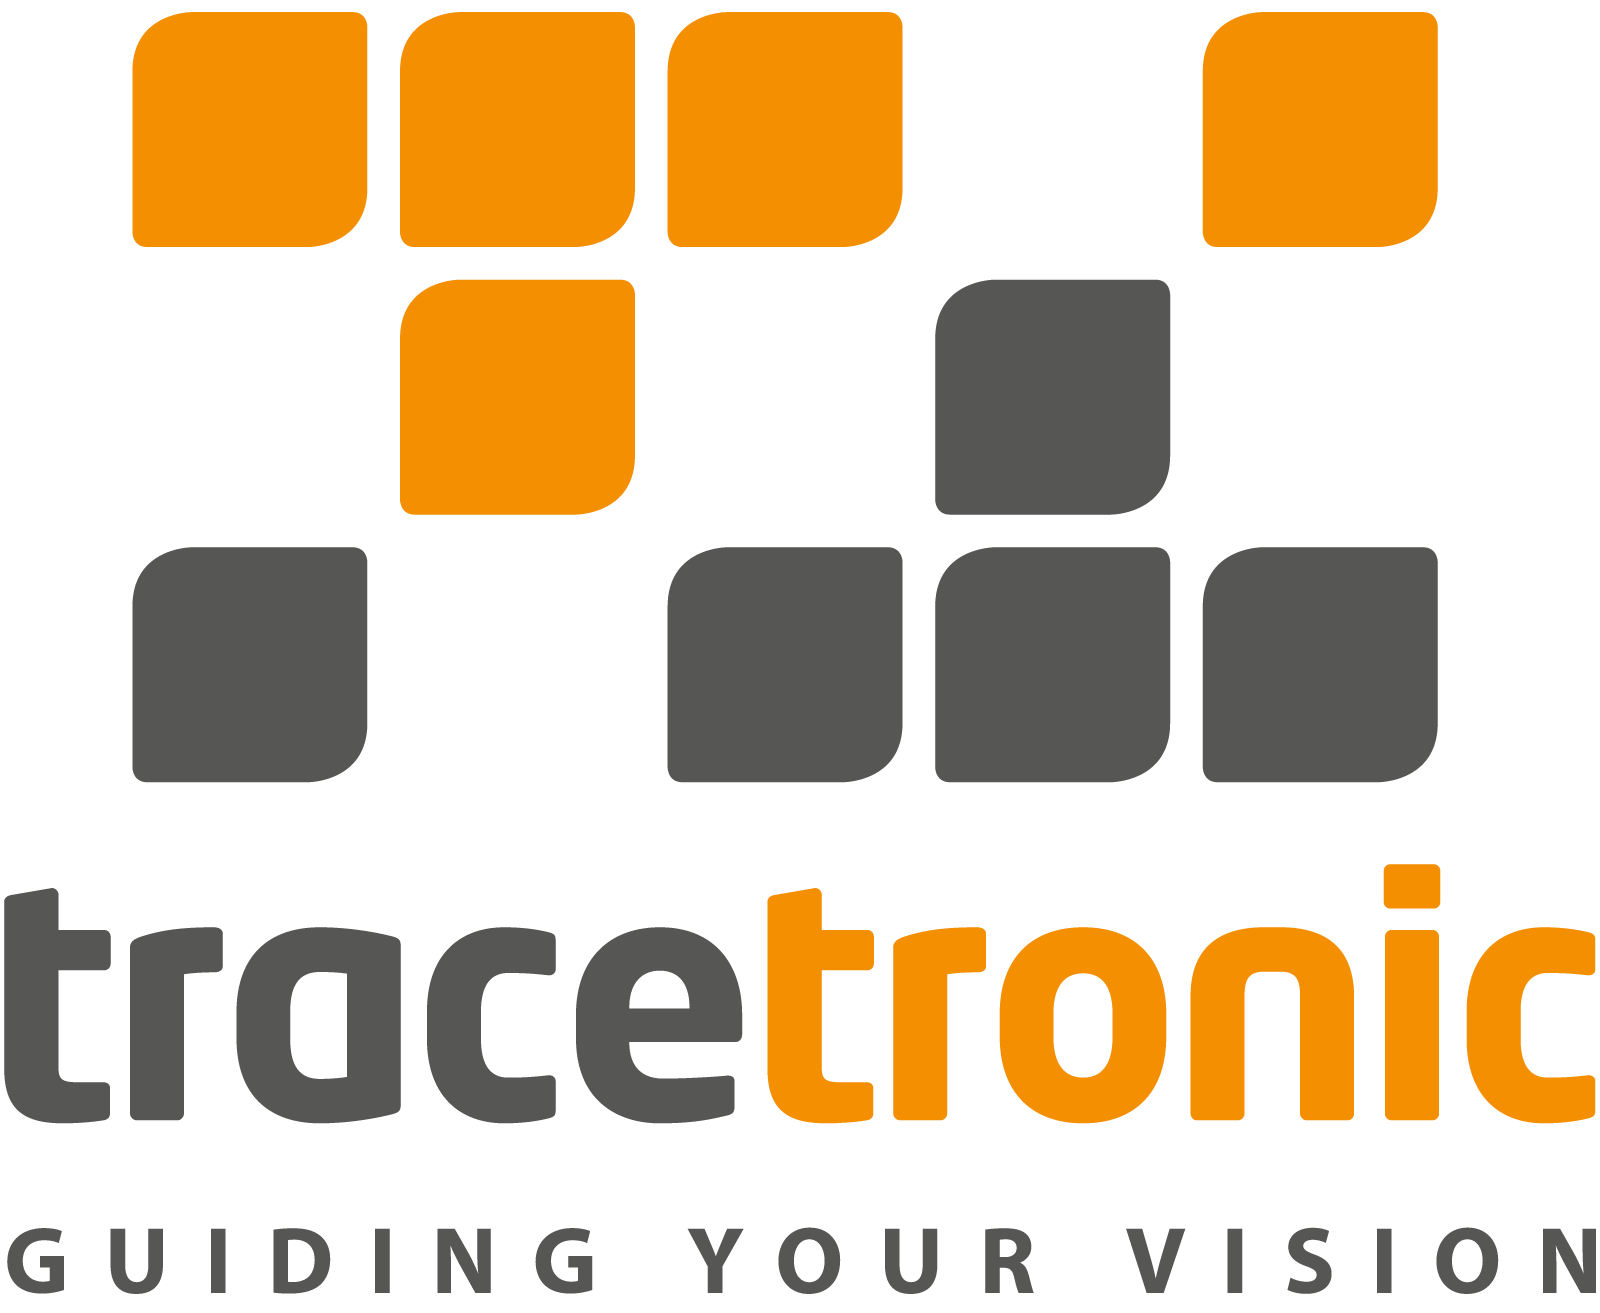 Trace Tronic